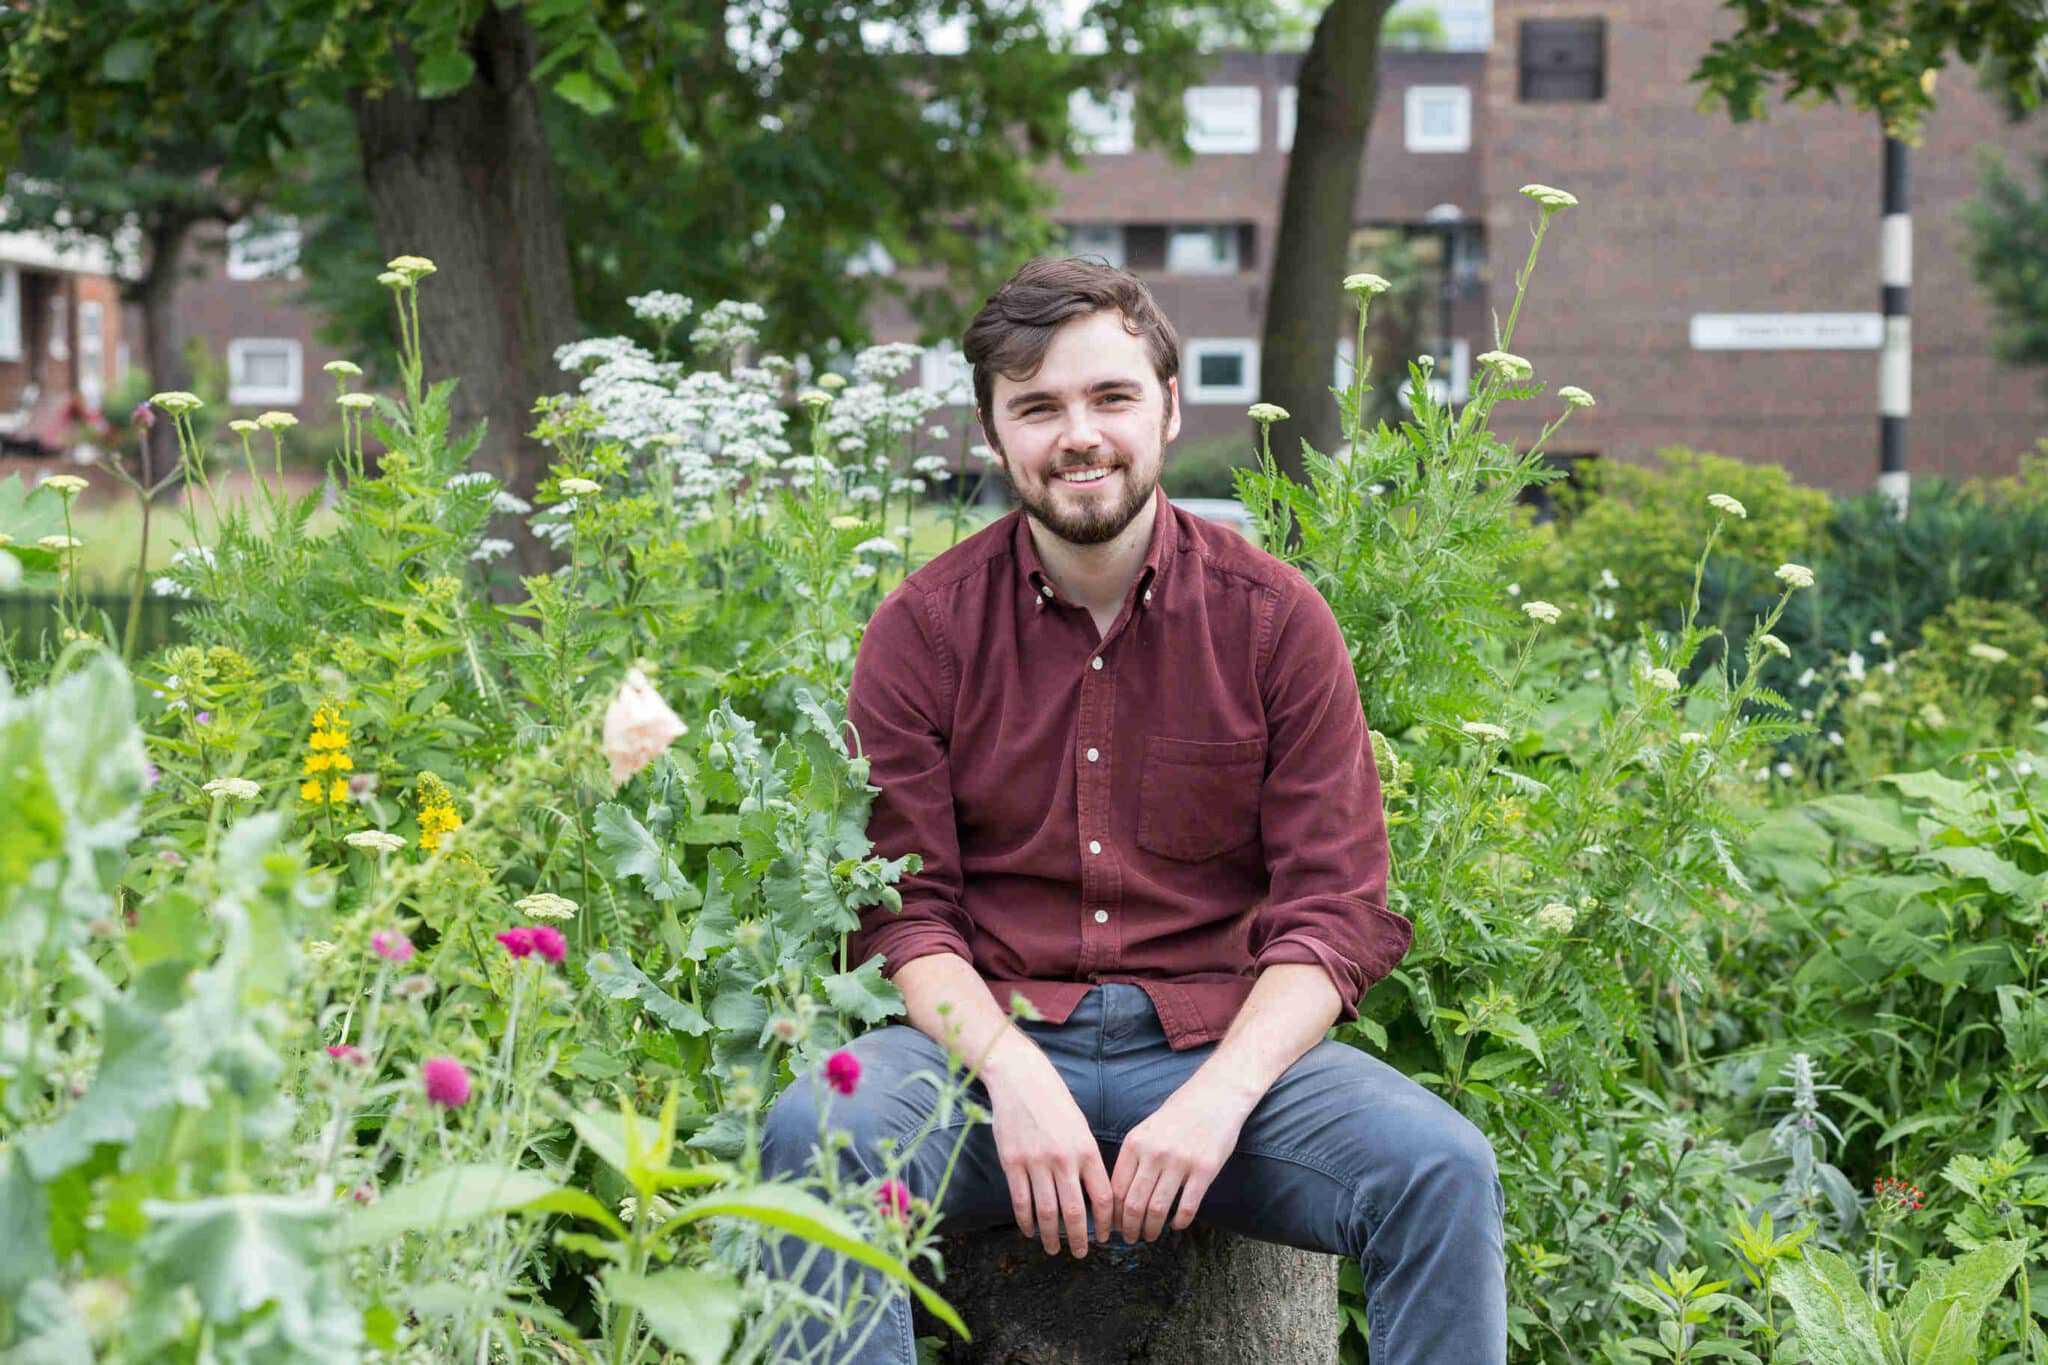 Joe is sat on a tree stump in the midst of a wildflower garden. In the distance is a block of red brick flats and a black and white sign post. Joe is wearing a red shirt and blue chinos.